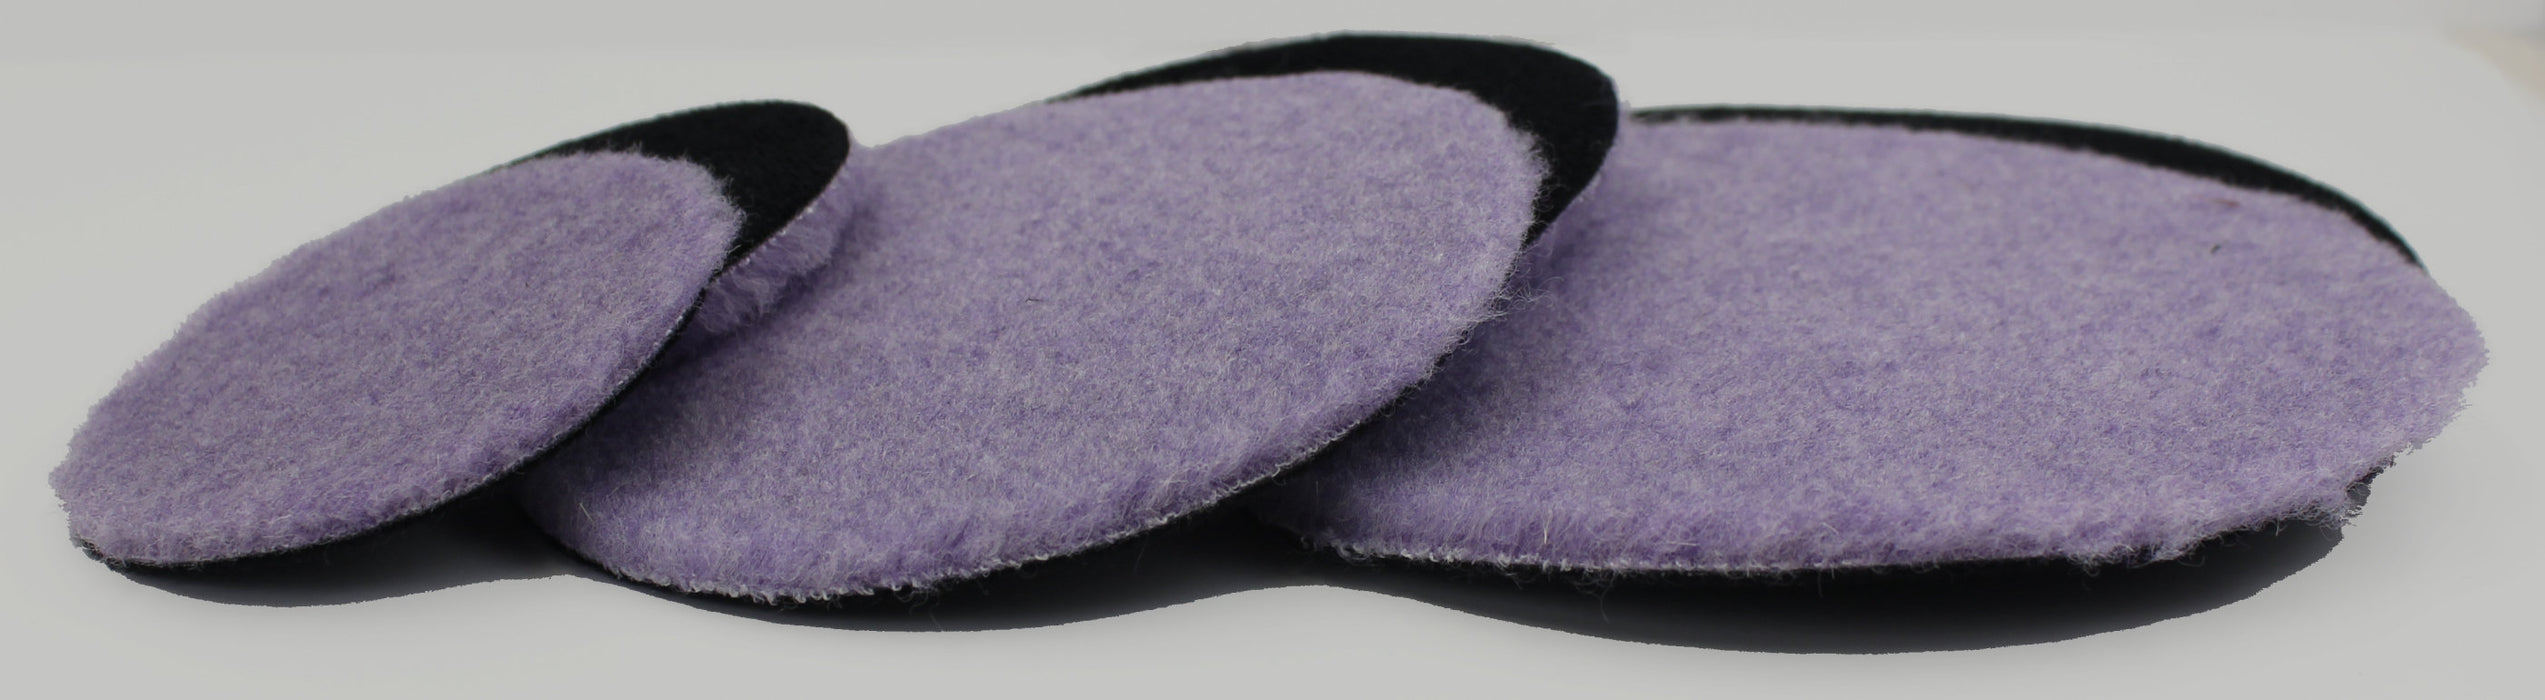 Purple Foamed Wool Pad (Available in 3 Diameters)